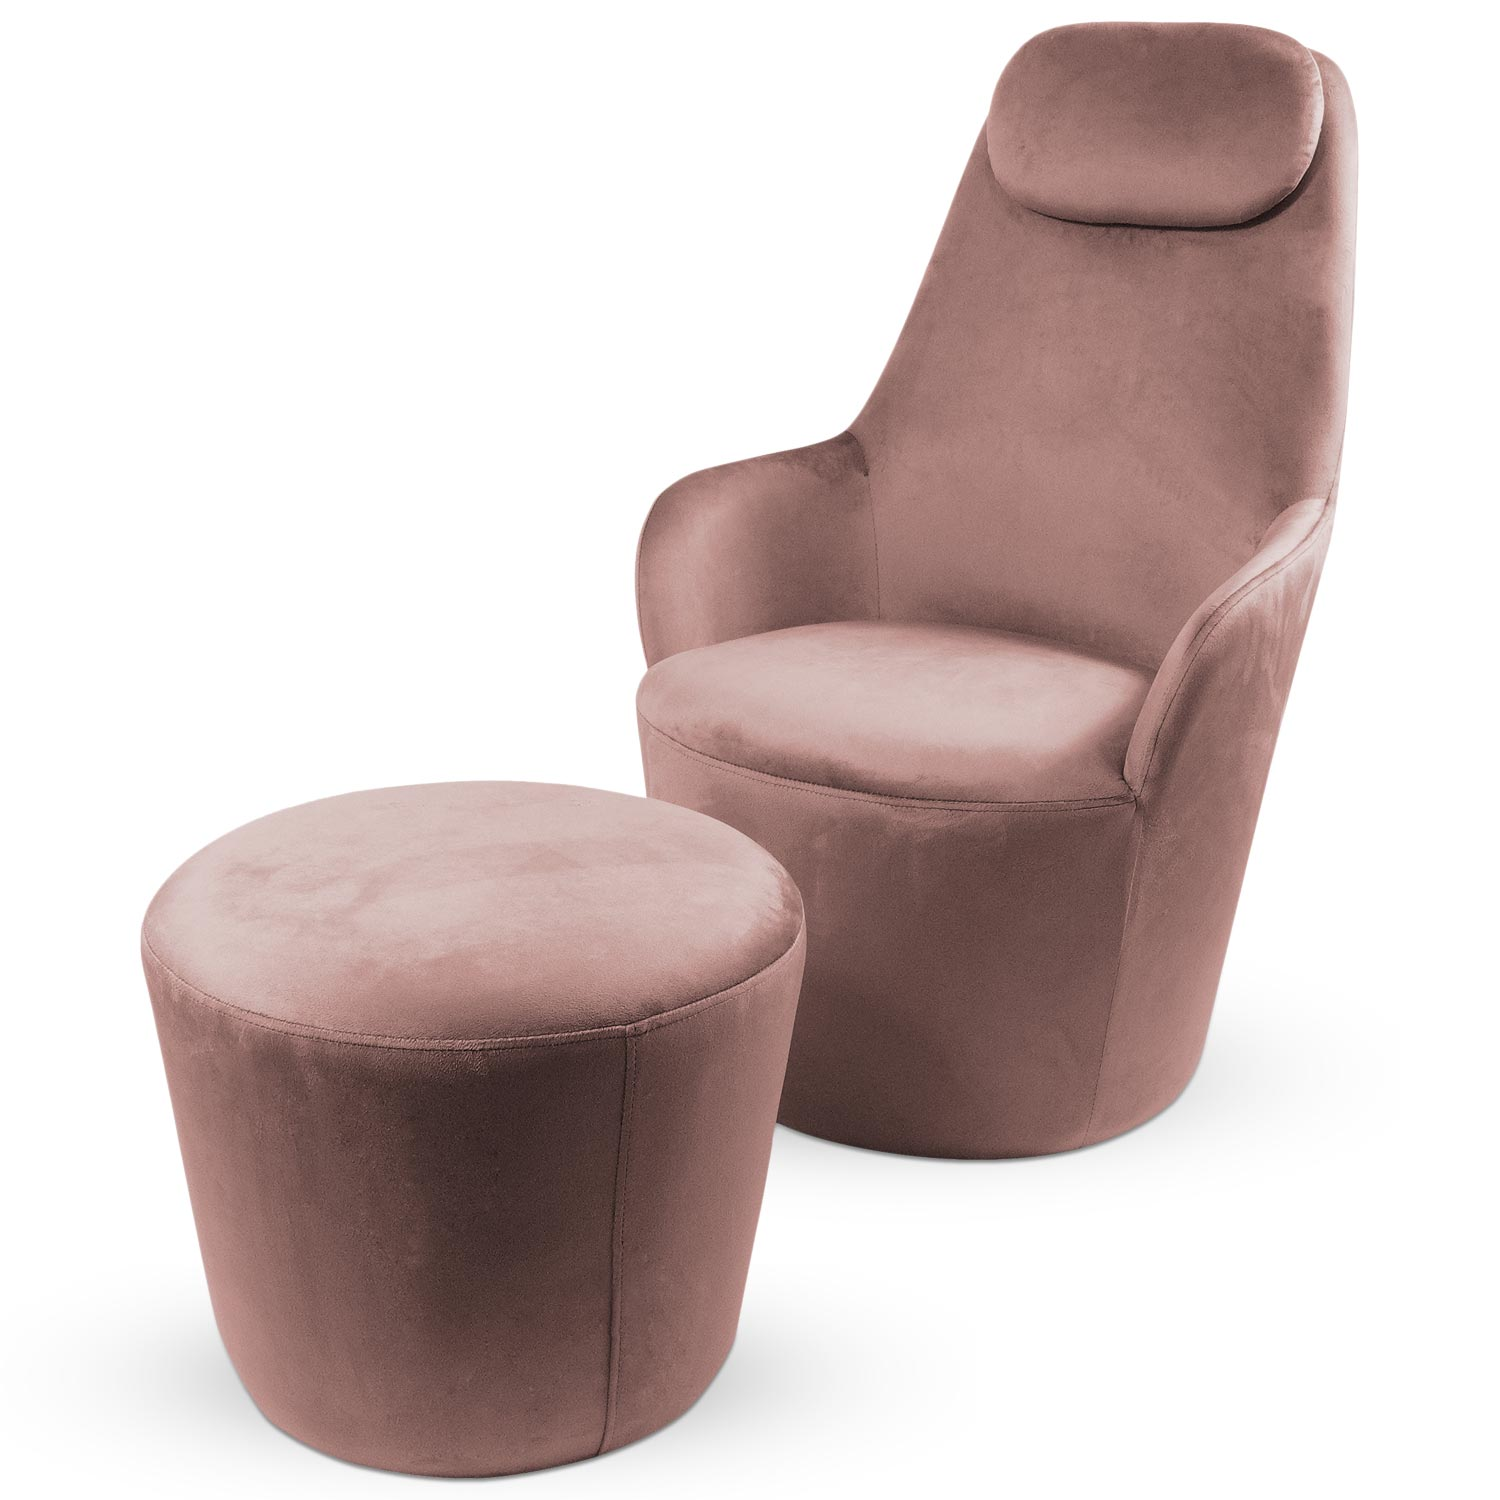 Fauteuil Dongal avec repose-pieds Velours Rose